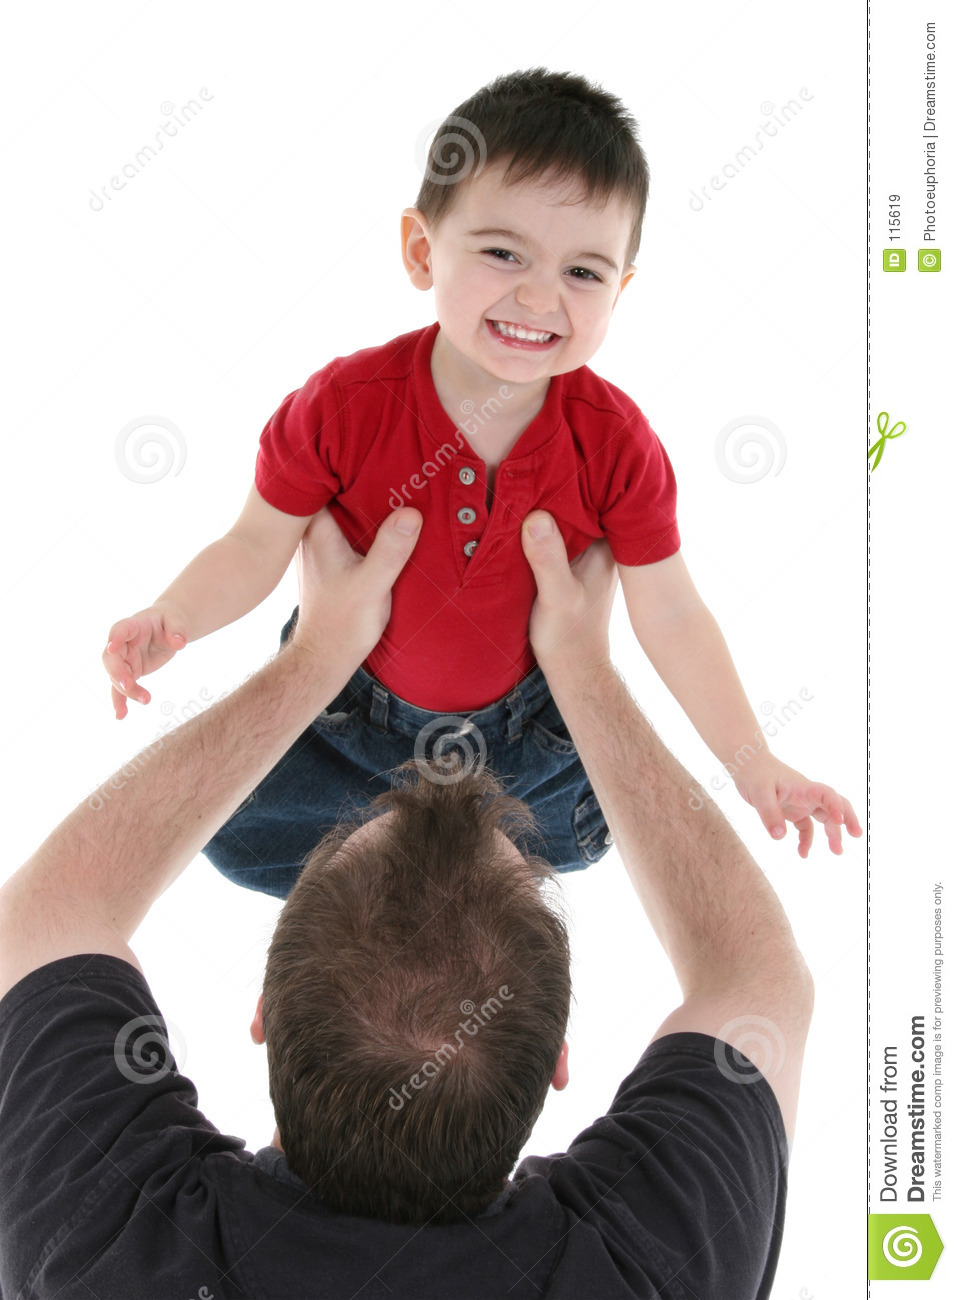 Adorable Family Moment Between Father And Son